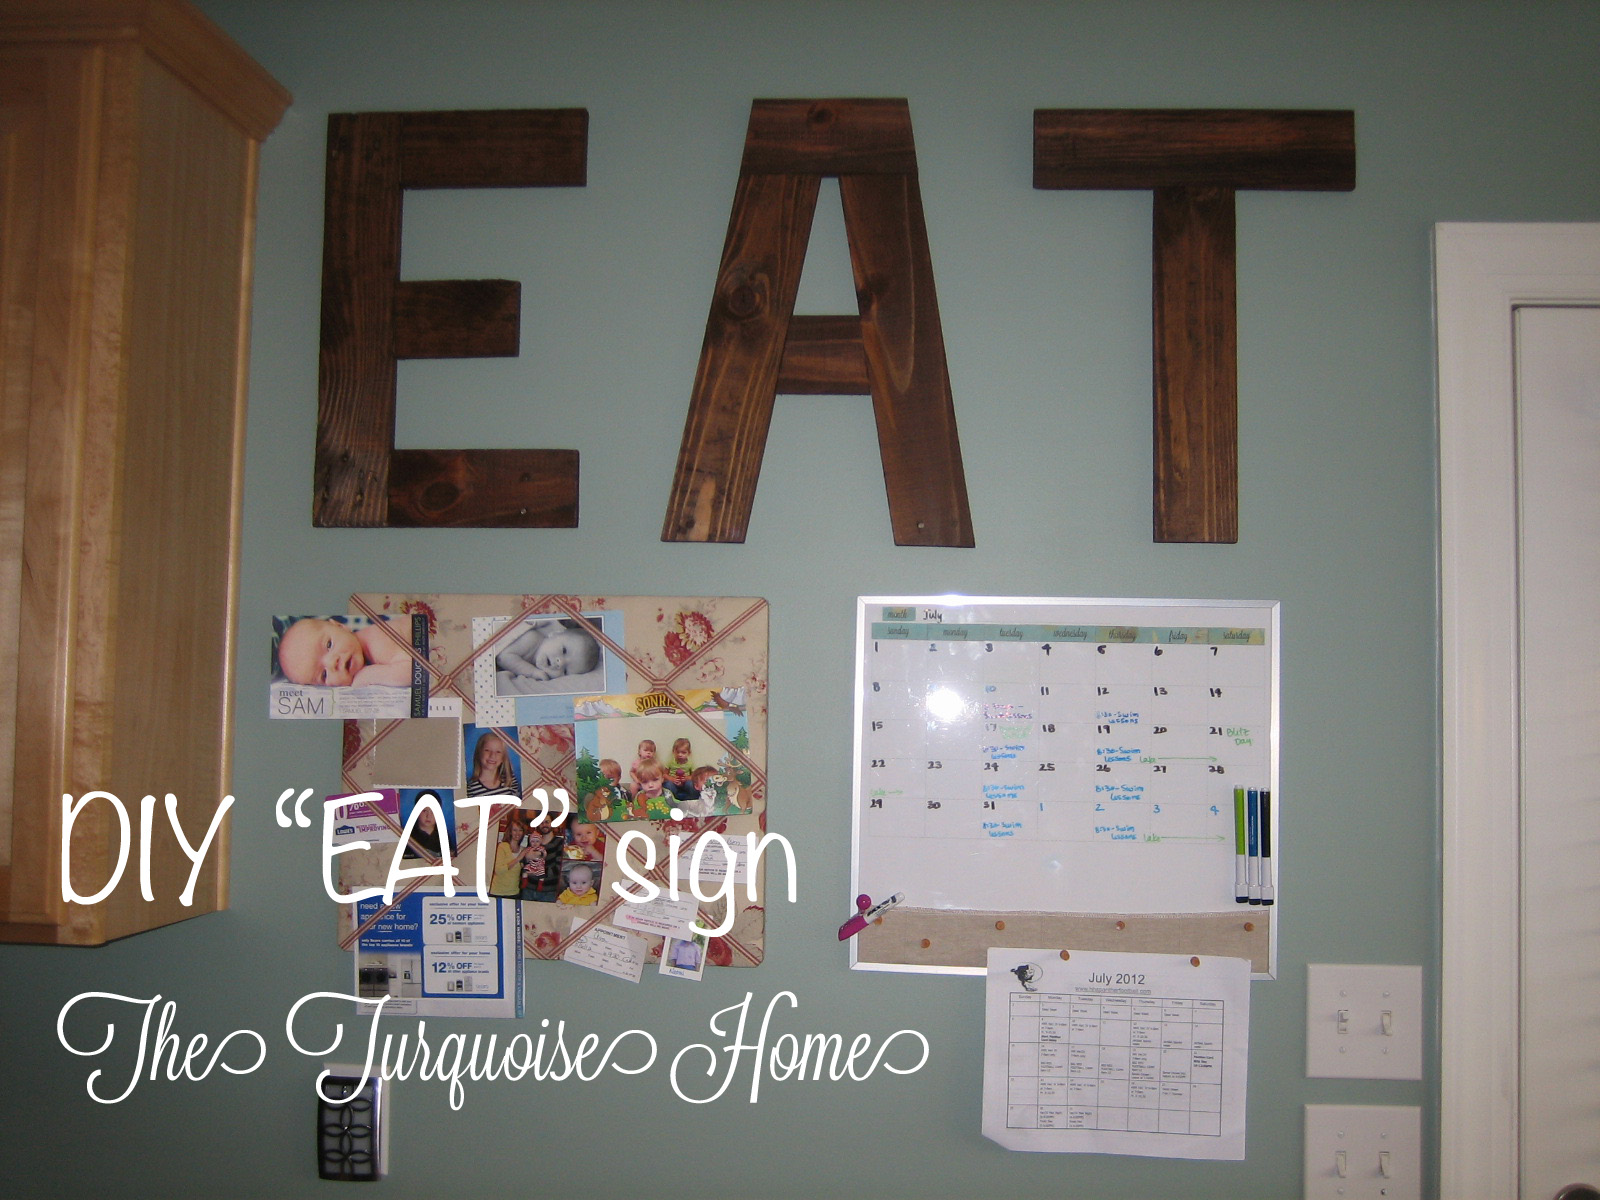 Diy Quot Eat Quot Sign From Pallets The Turquoise Home